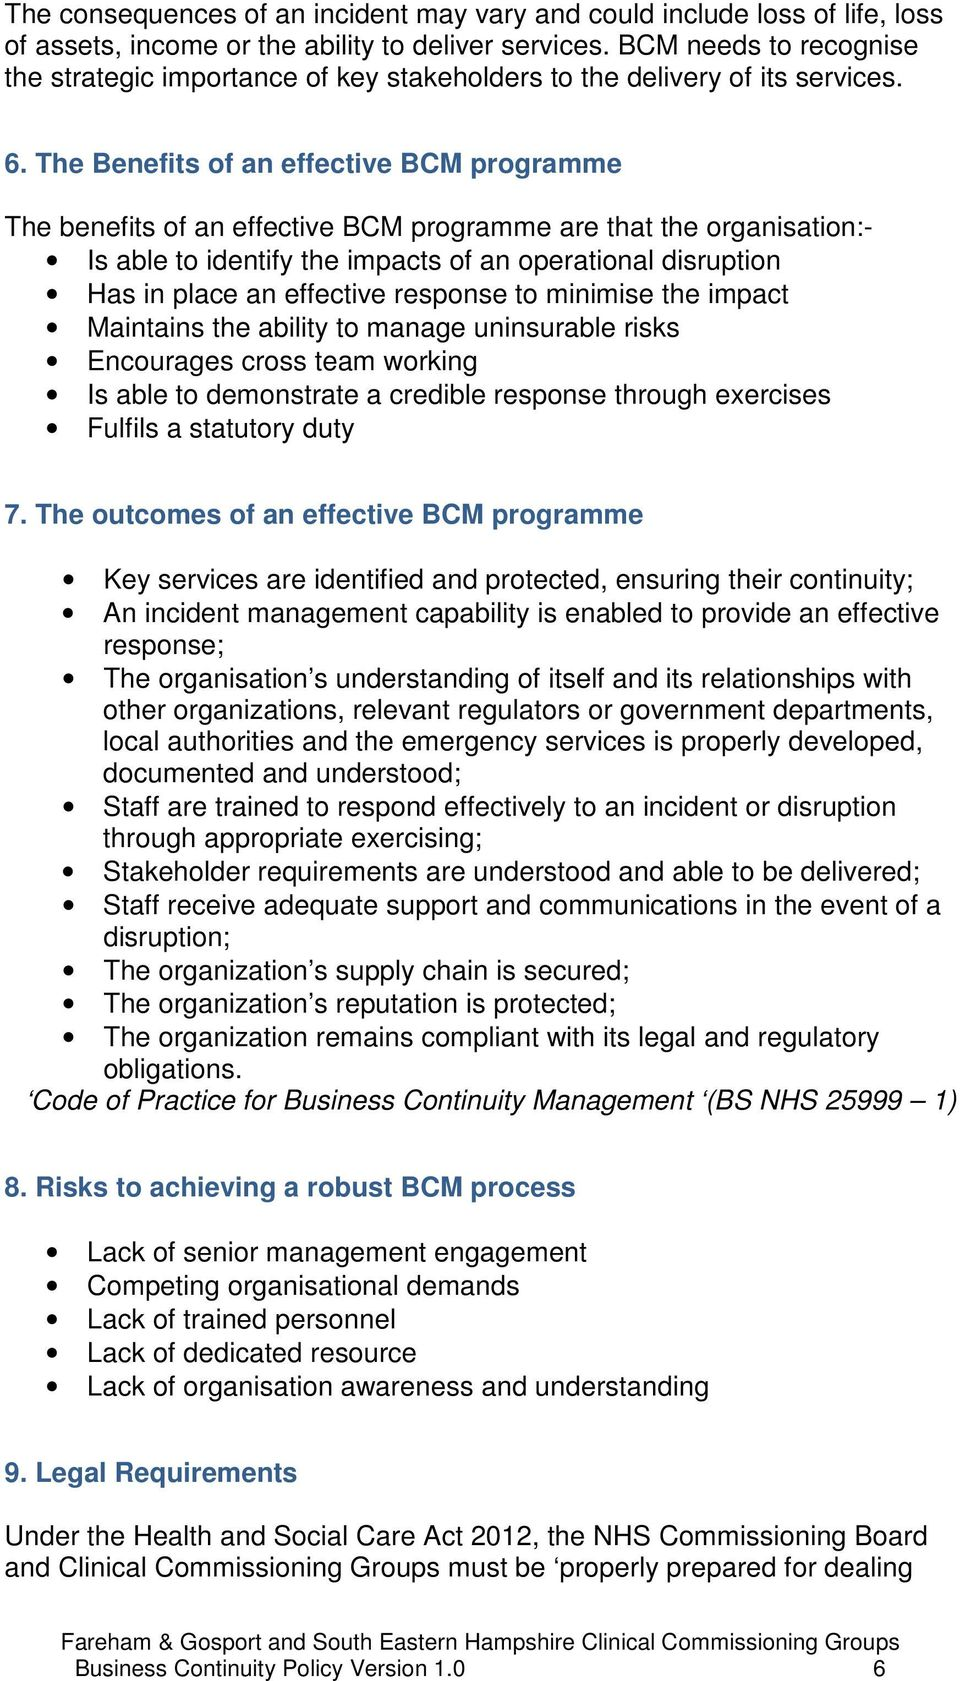 The Benefits of an effective BCM programme The benefits of an effective BCM programme are that the organisation:- Is able to identify the impacts of an operational disruption Has in place an